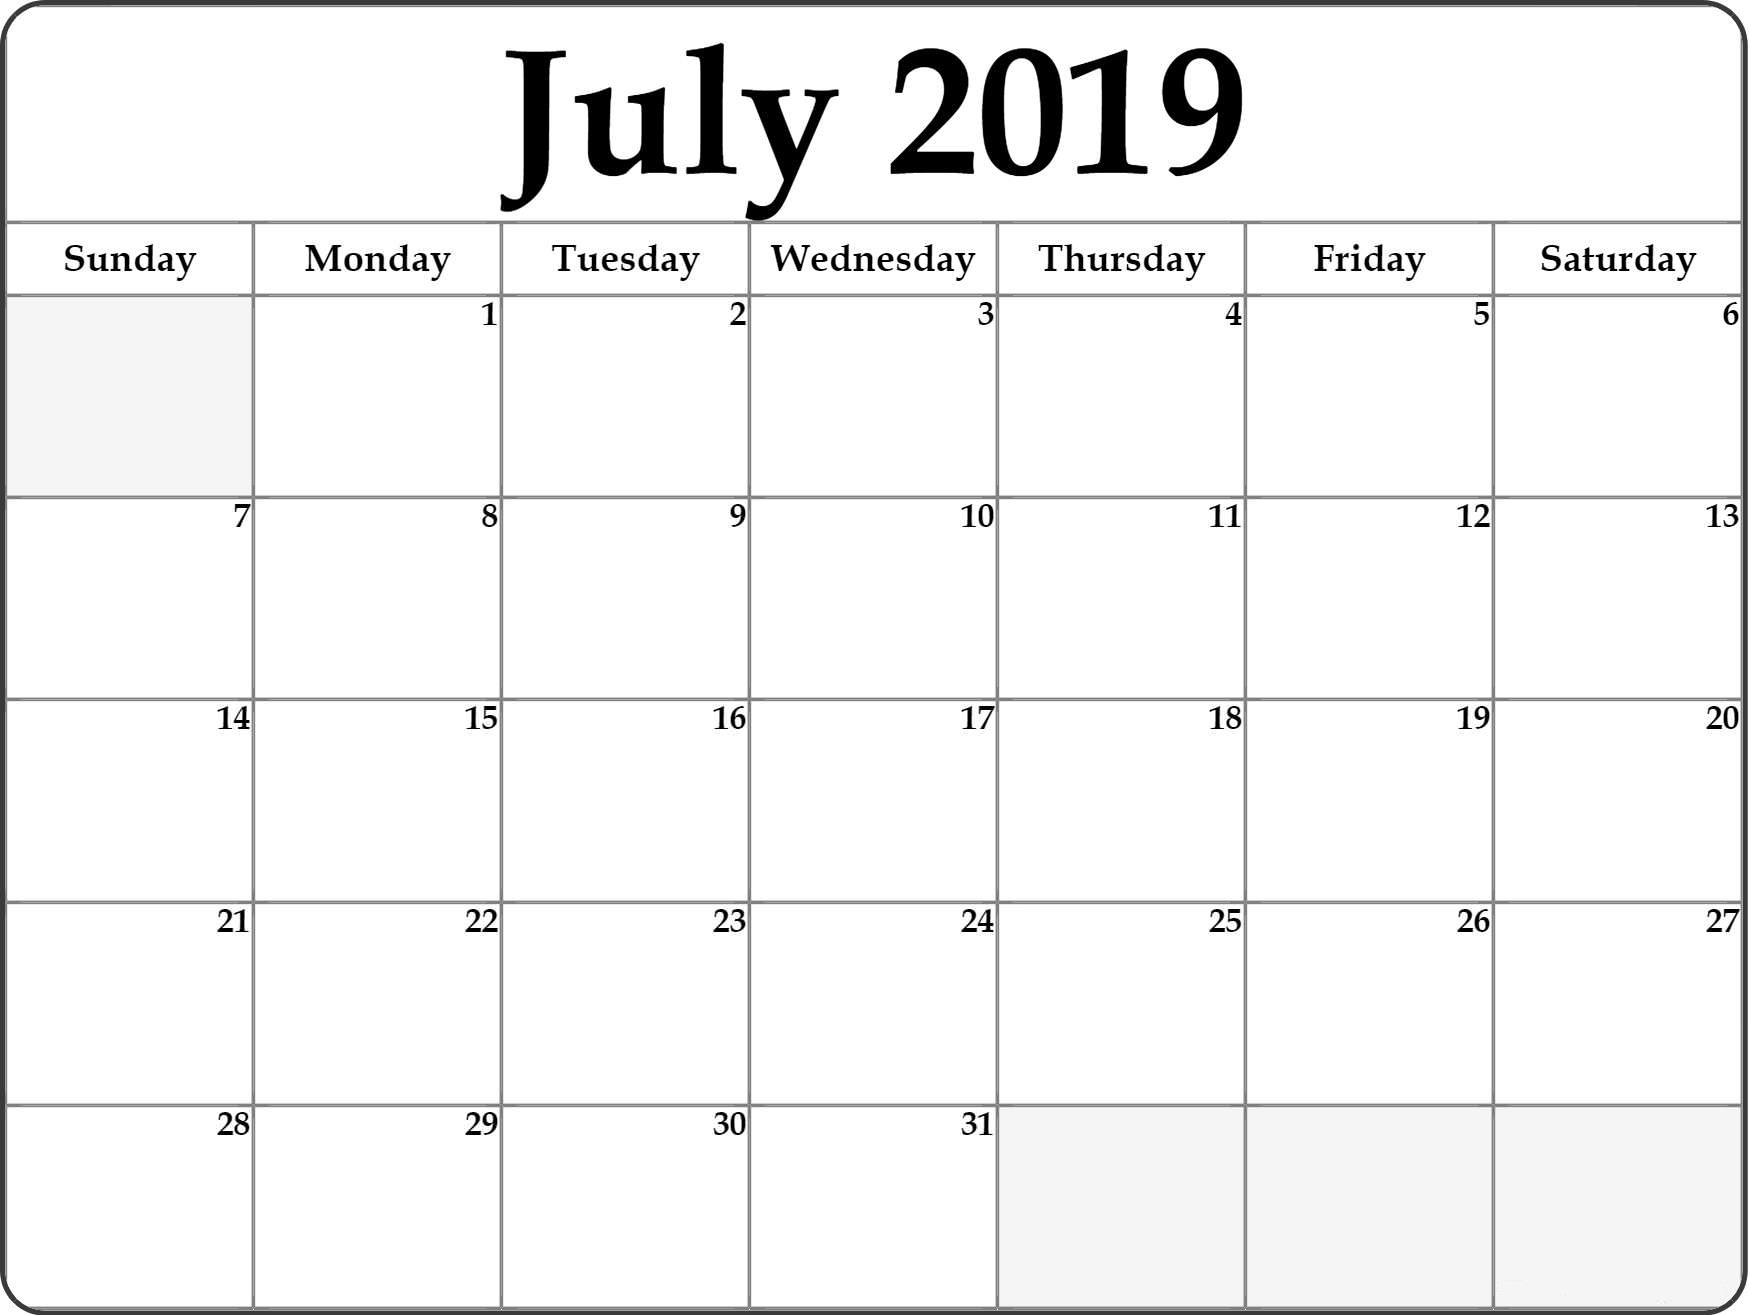 July monthly calendar 2019